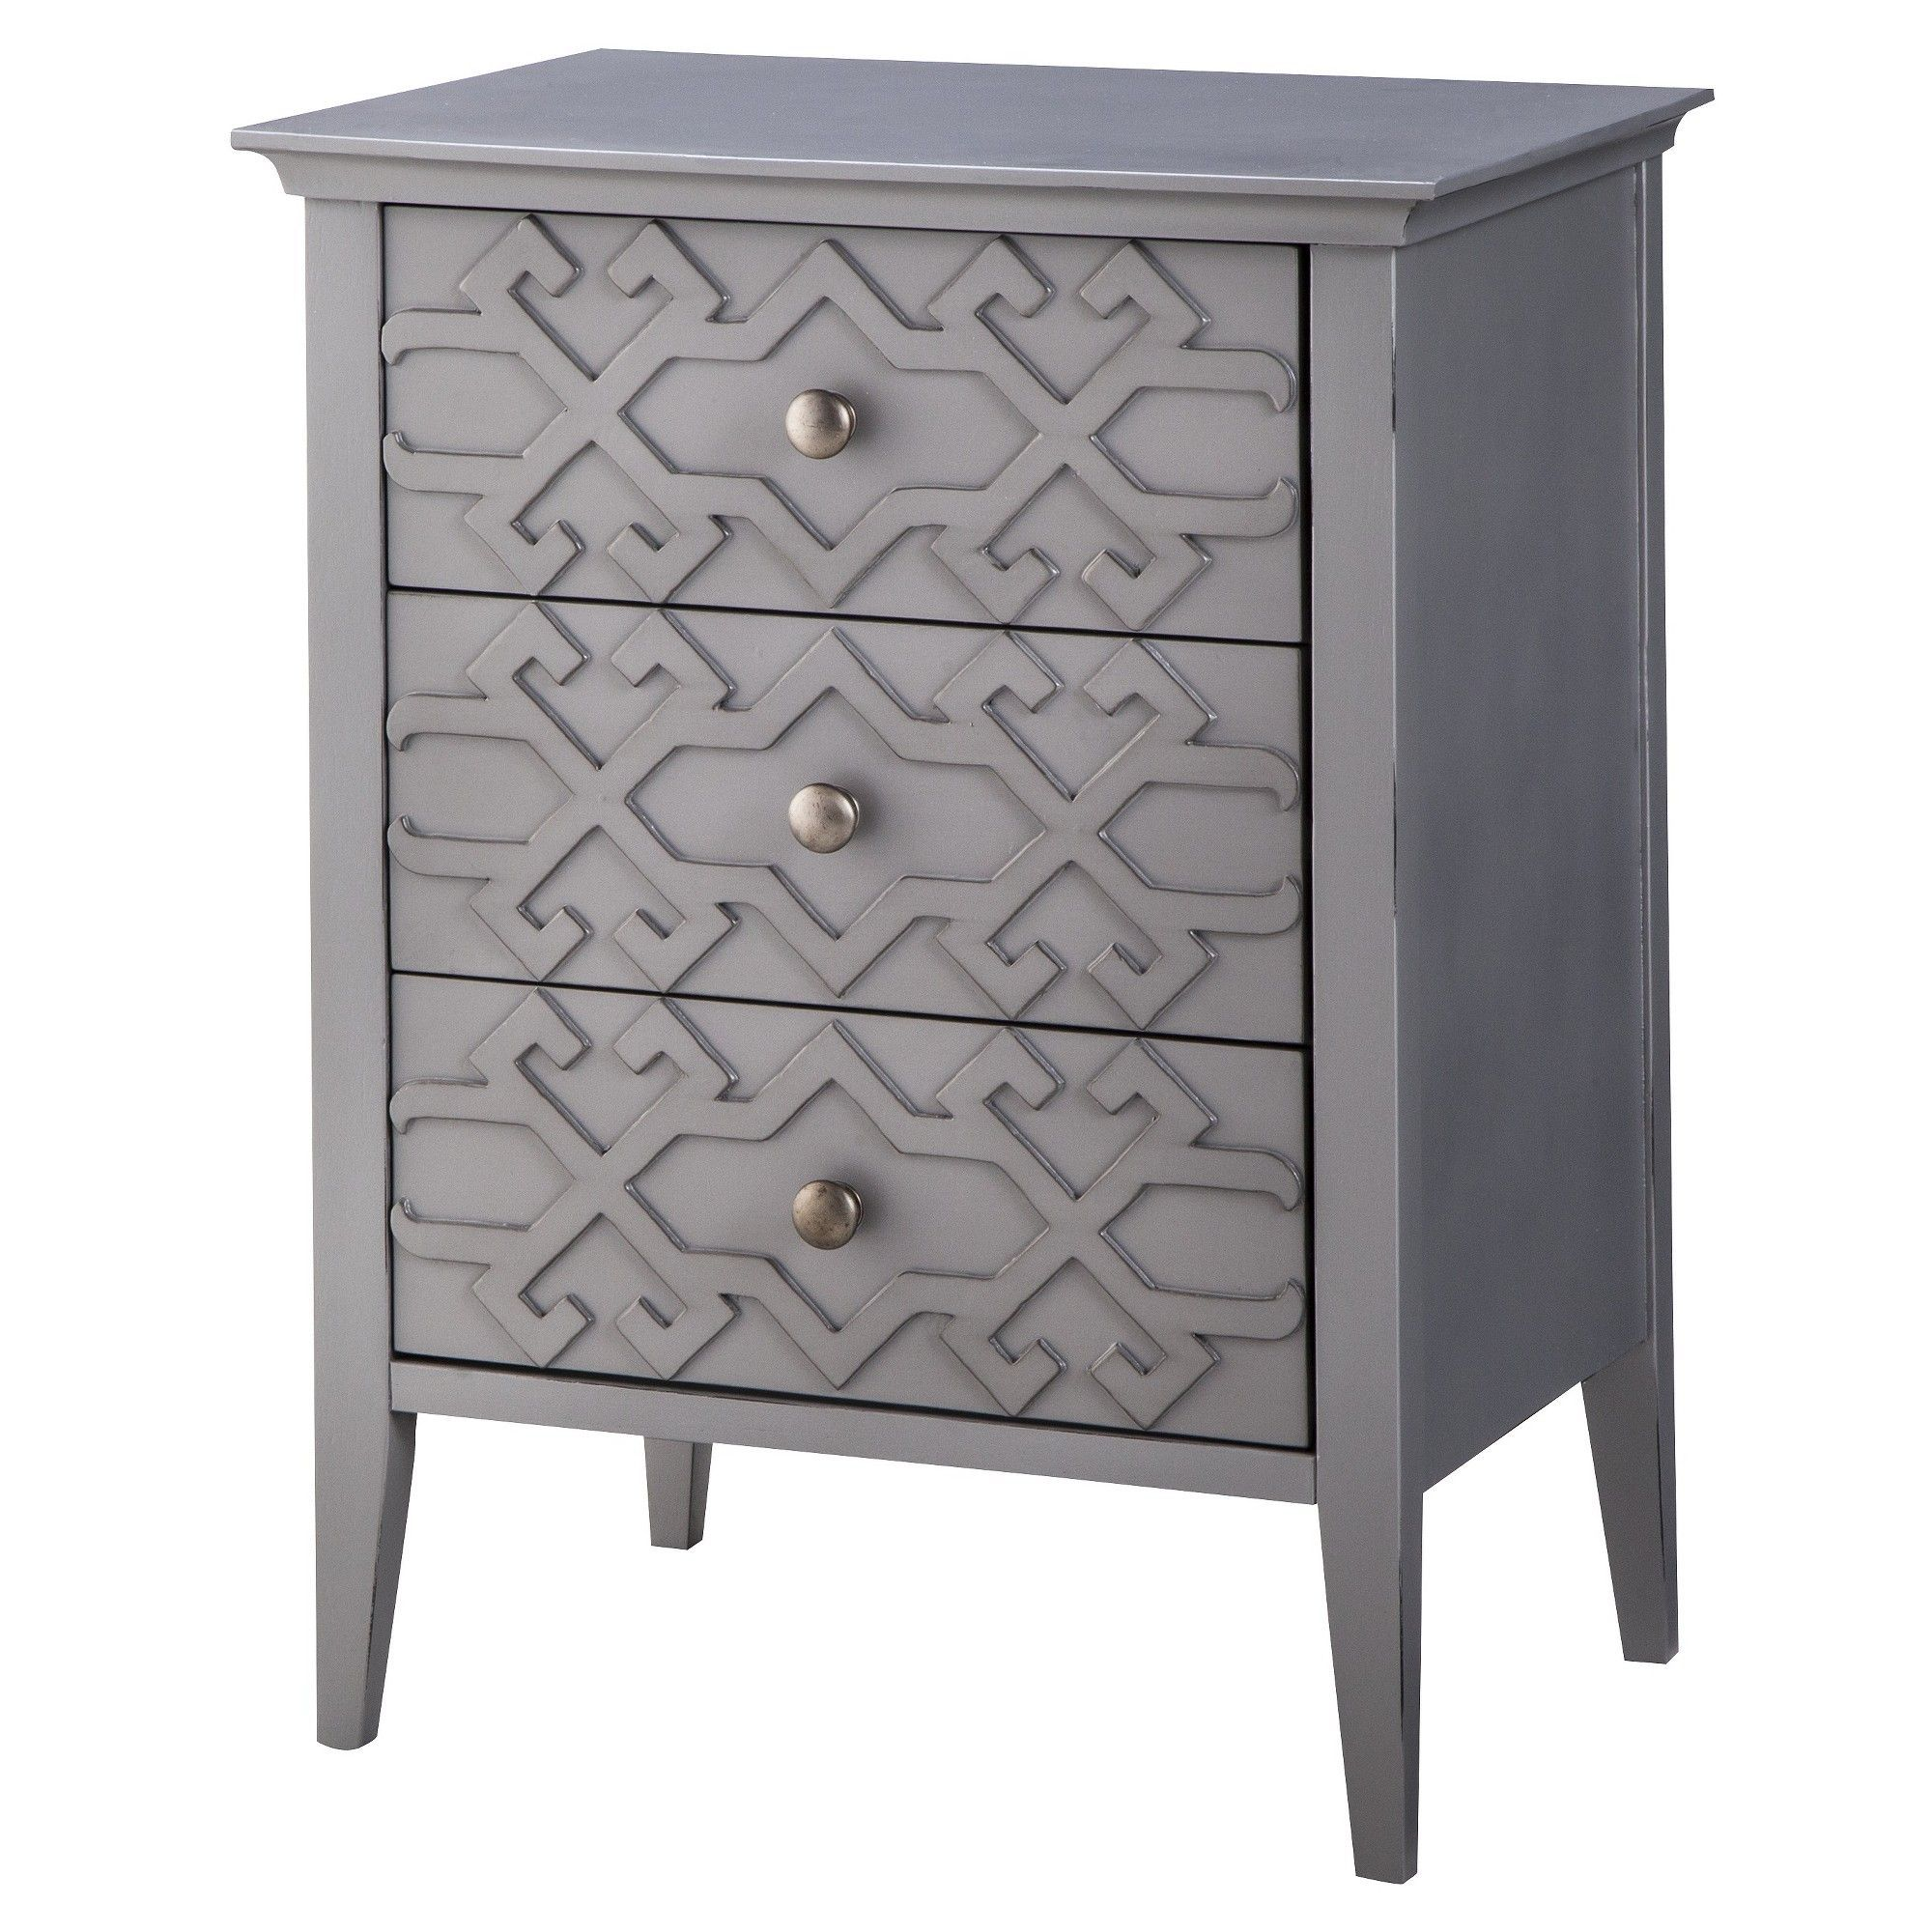 fretwork accent table threshold gray products white ashley furniture chairs pottery barn pedestal brown metal coffee copper floor lamp laura height room essentials bedding west